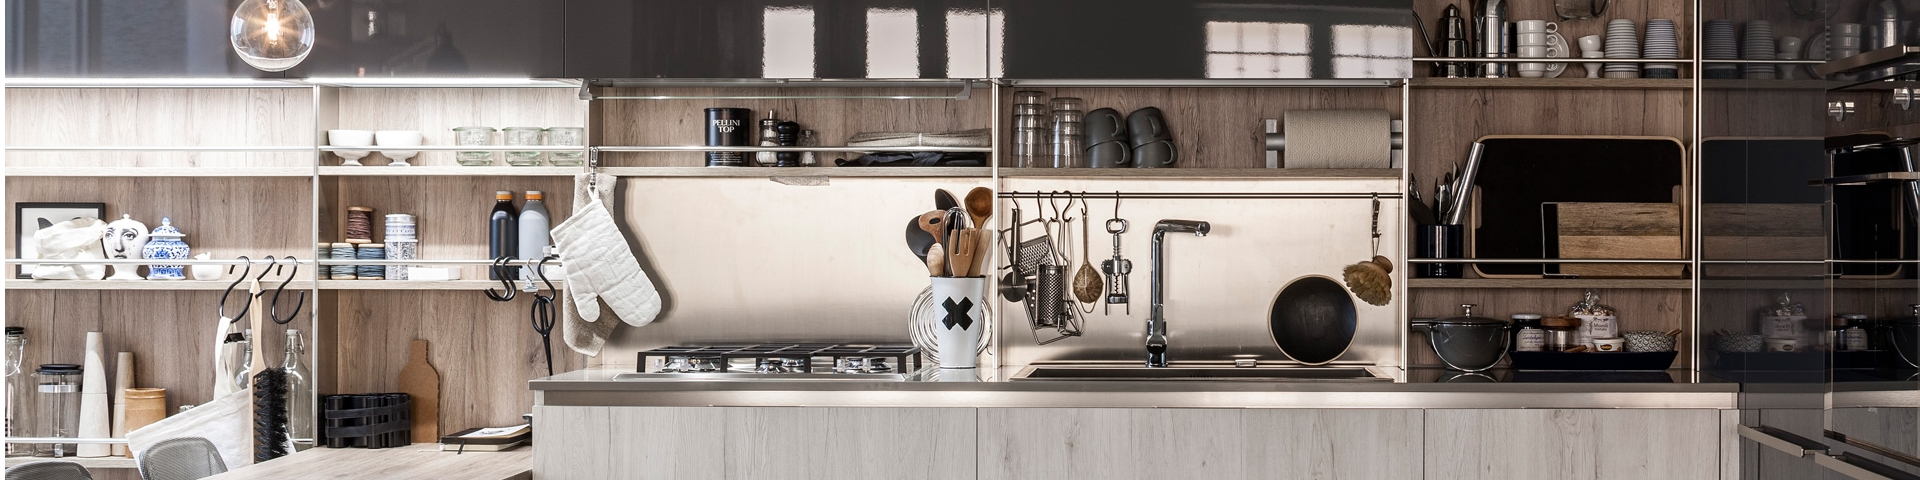 Veneta Cucine and kitchen of your dreams